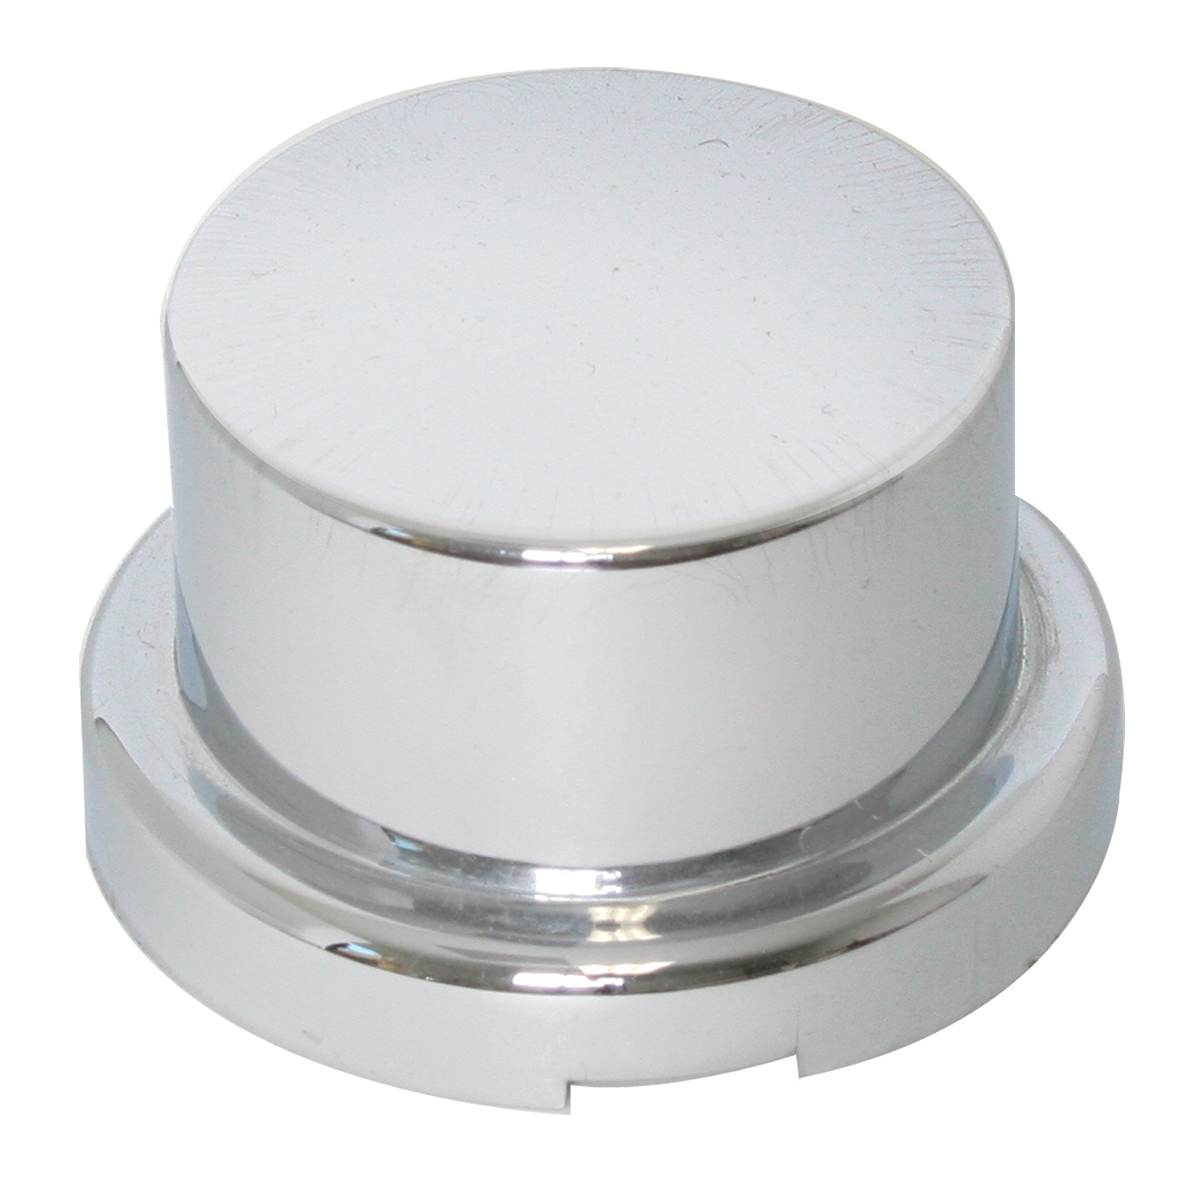 Standard Push-On Lug Nut Cover with Flange